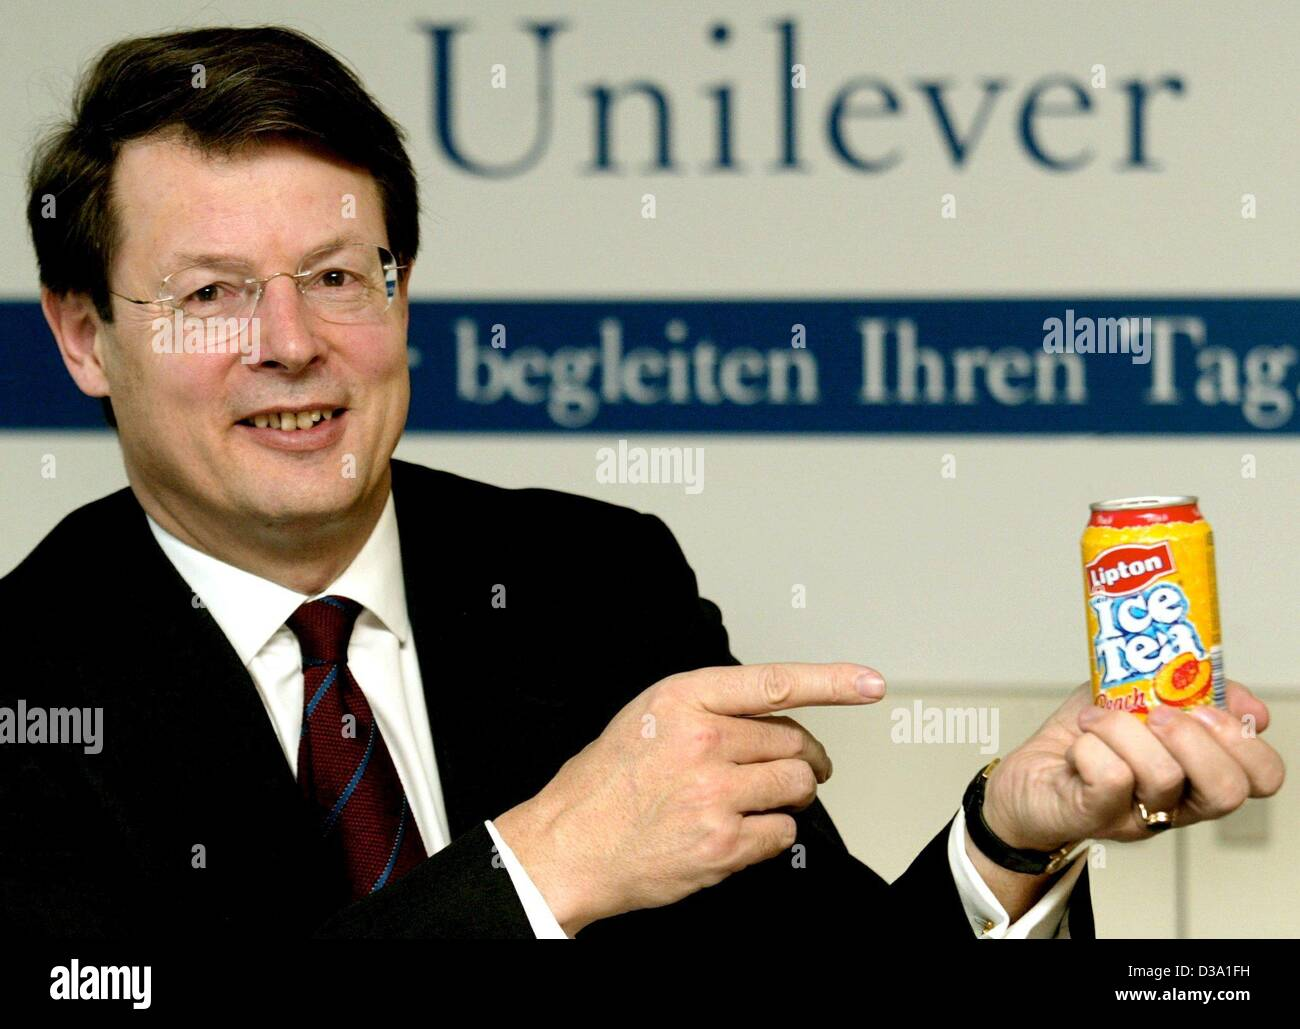 (dpa) - Johann C. Lindenberg, CEO of Unilever Germany Ltd., presents a can of Lipton Ice Tea, one of the products Stock Photo